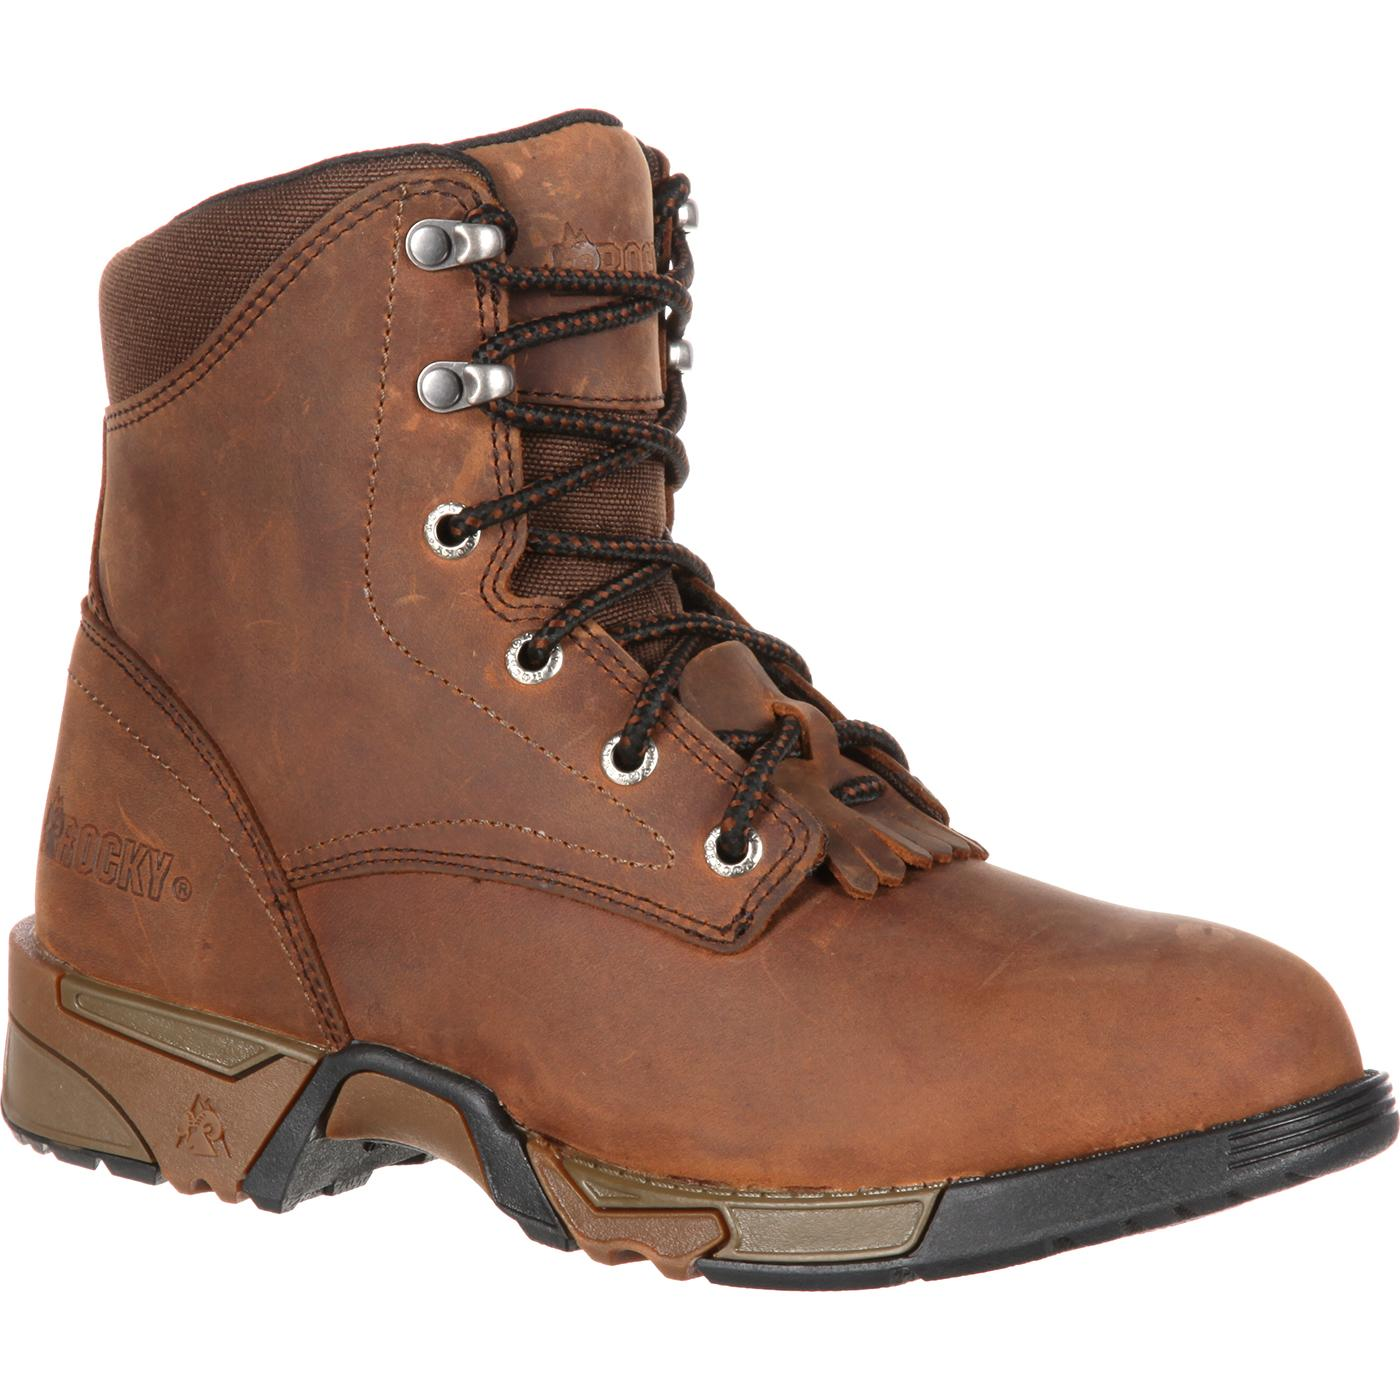 rocky s aztec steel toe work boot style rkk0138